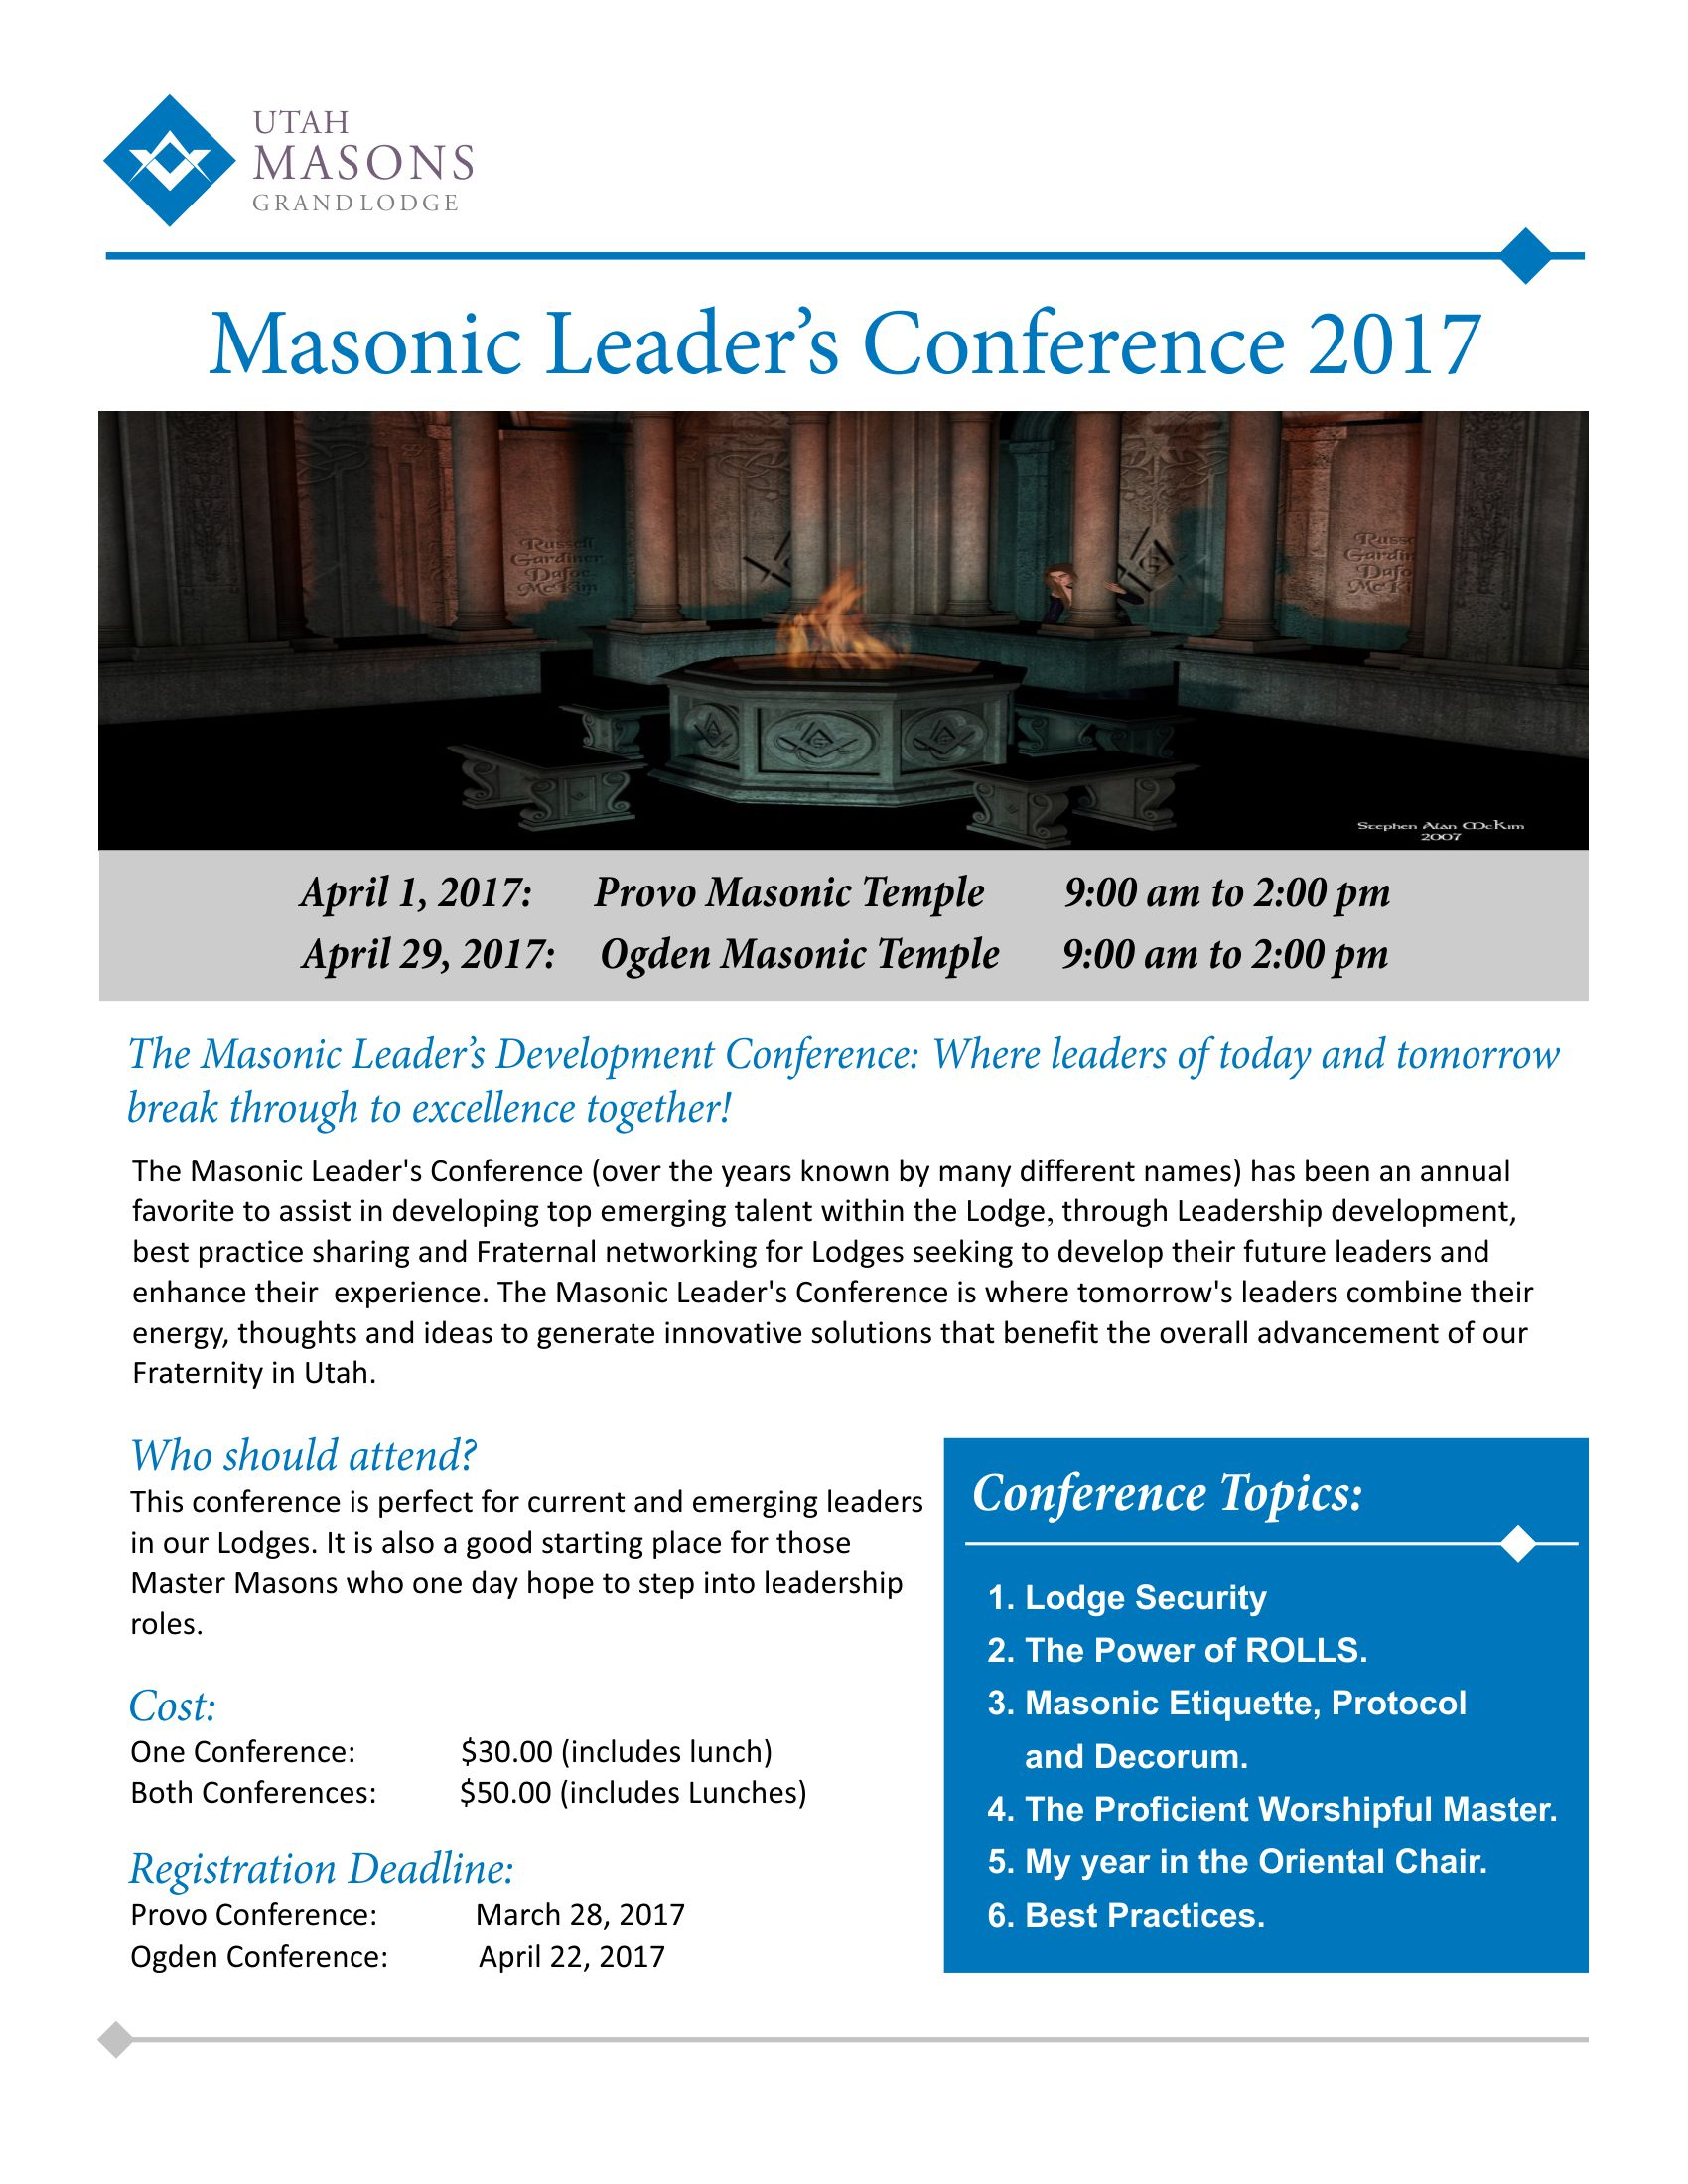 Masonic Leader's Conference 2017 Online Registration